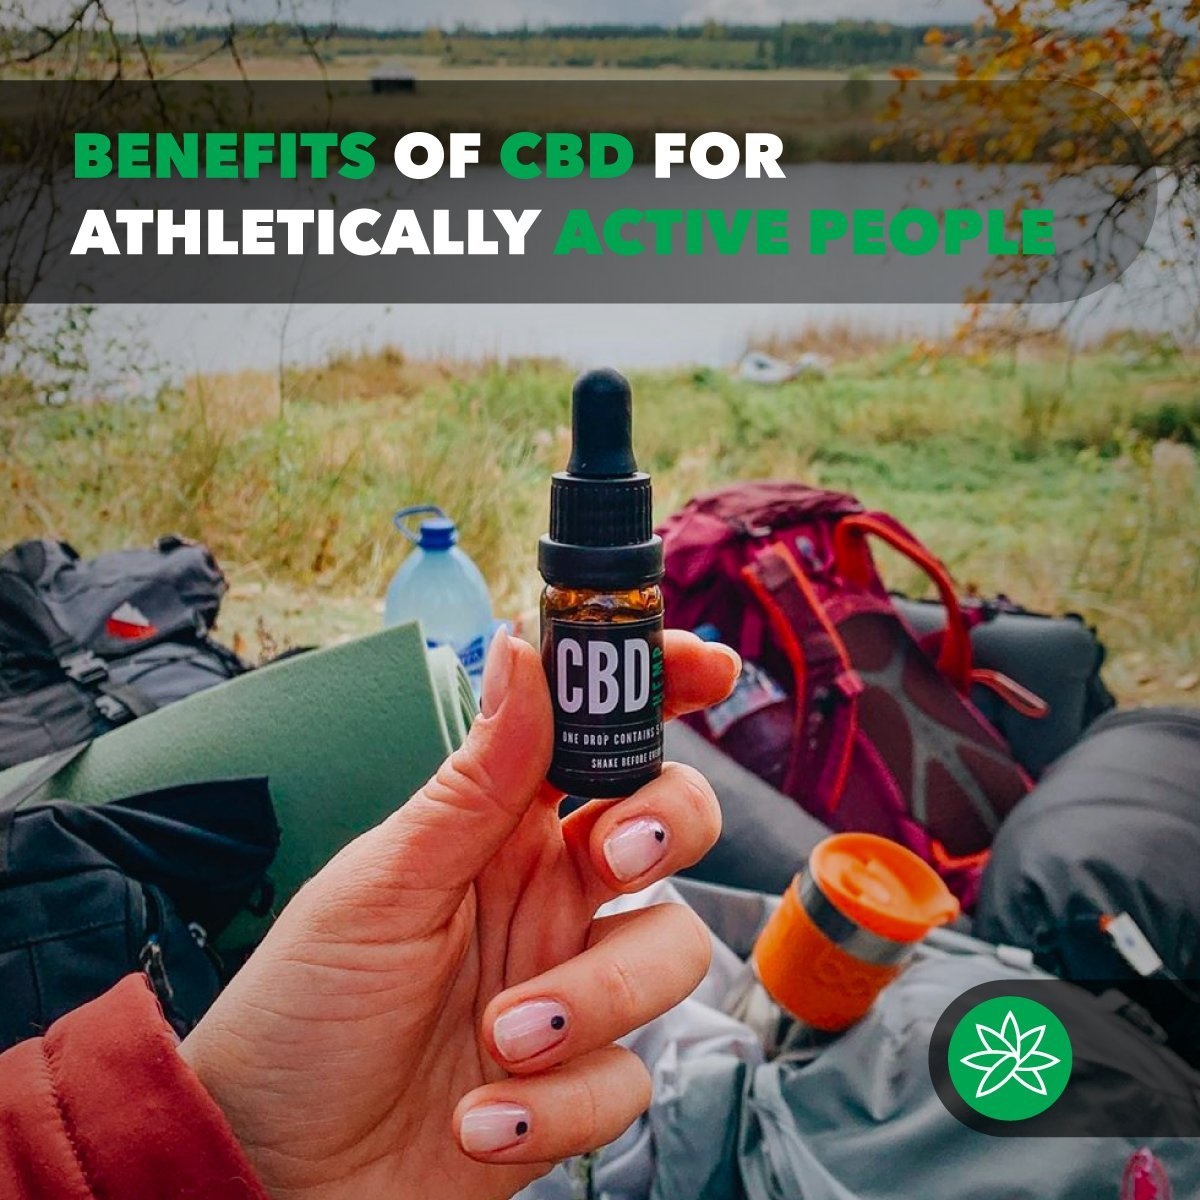 Benefits of CBD for sports